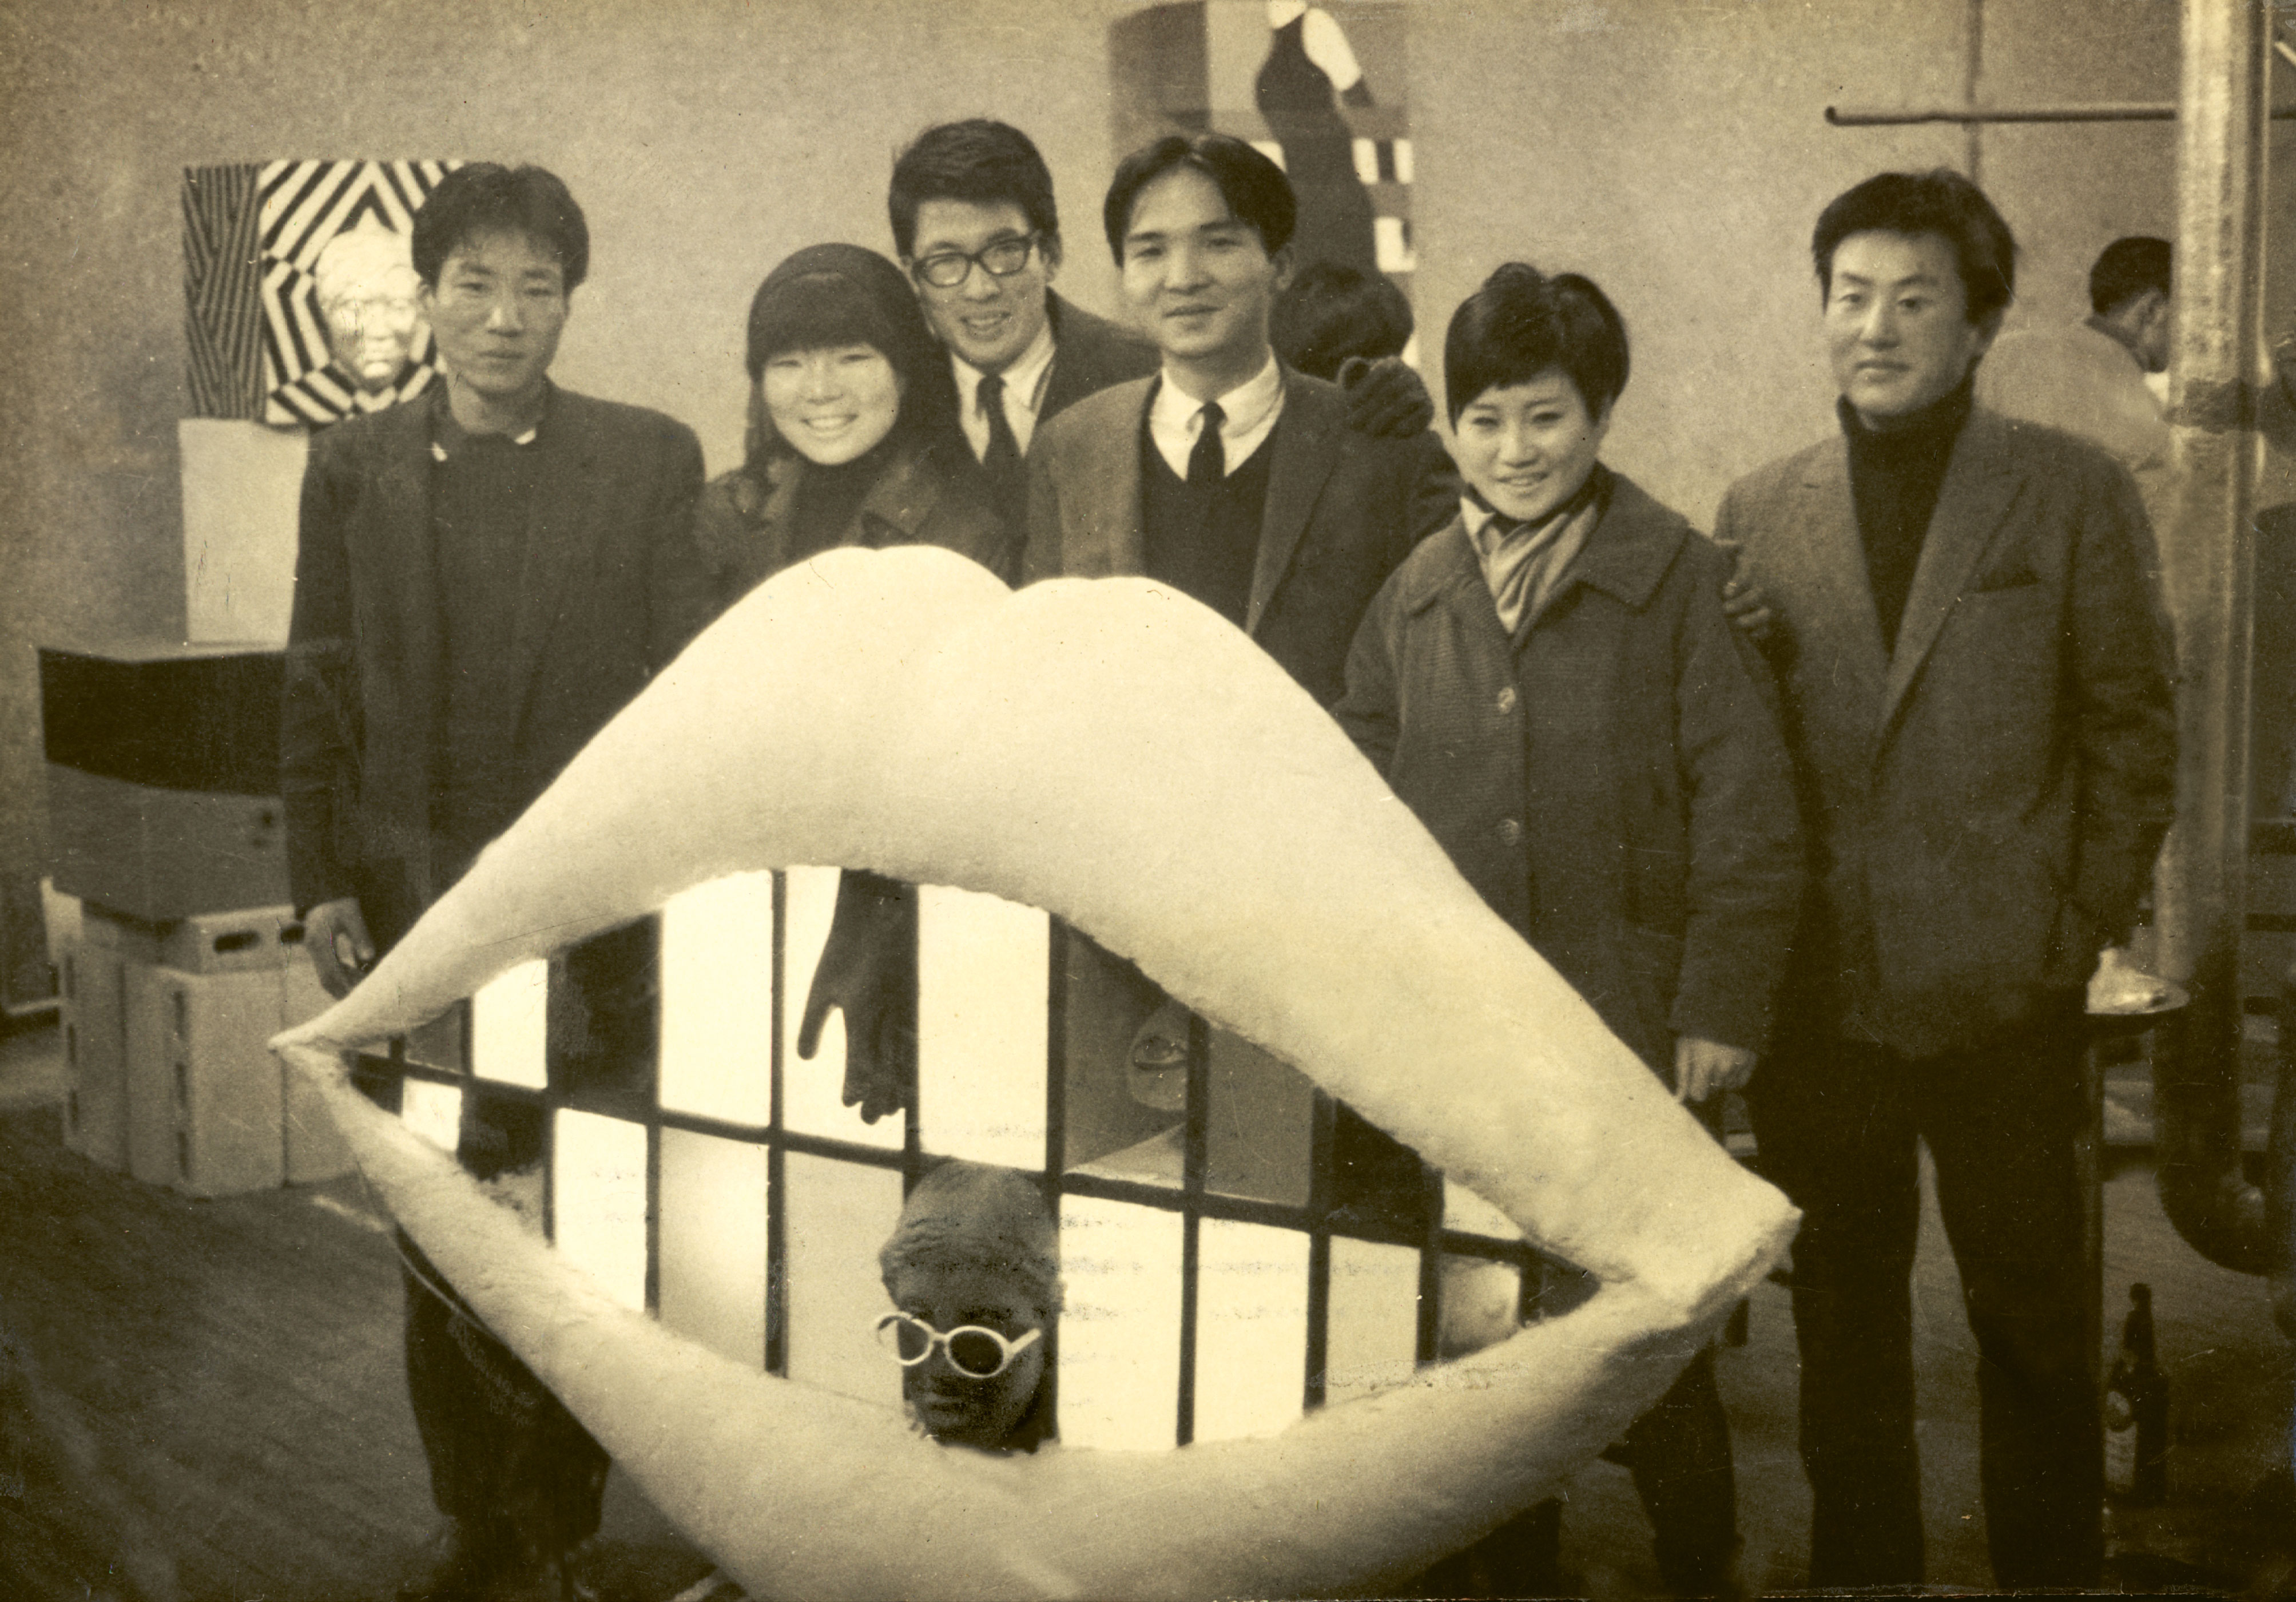 Artists of the Shinjeon Group – Kang Kuk-jin, Jung Kang-ja, Chung Chan-seung, Kim In-hwan, Shim Sun-hee, Yang Duk-soo – standing by Jung's work Kiss me (1967), at the 'Union Exhibition of Korean Young Artists', Korea Information Center, Seoul, 1967